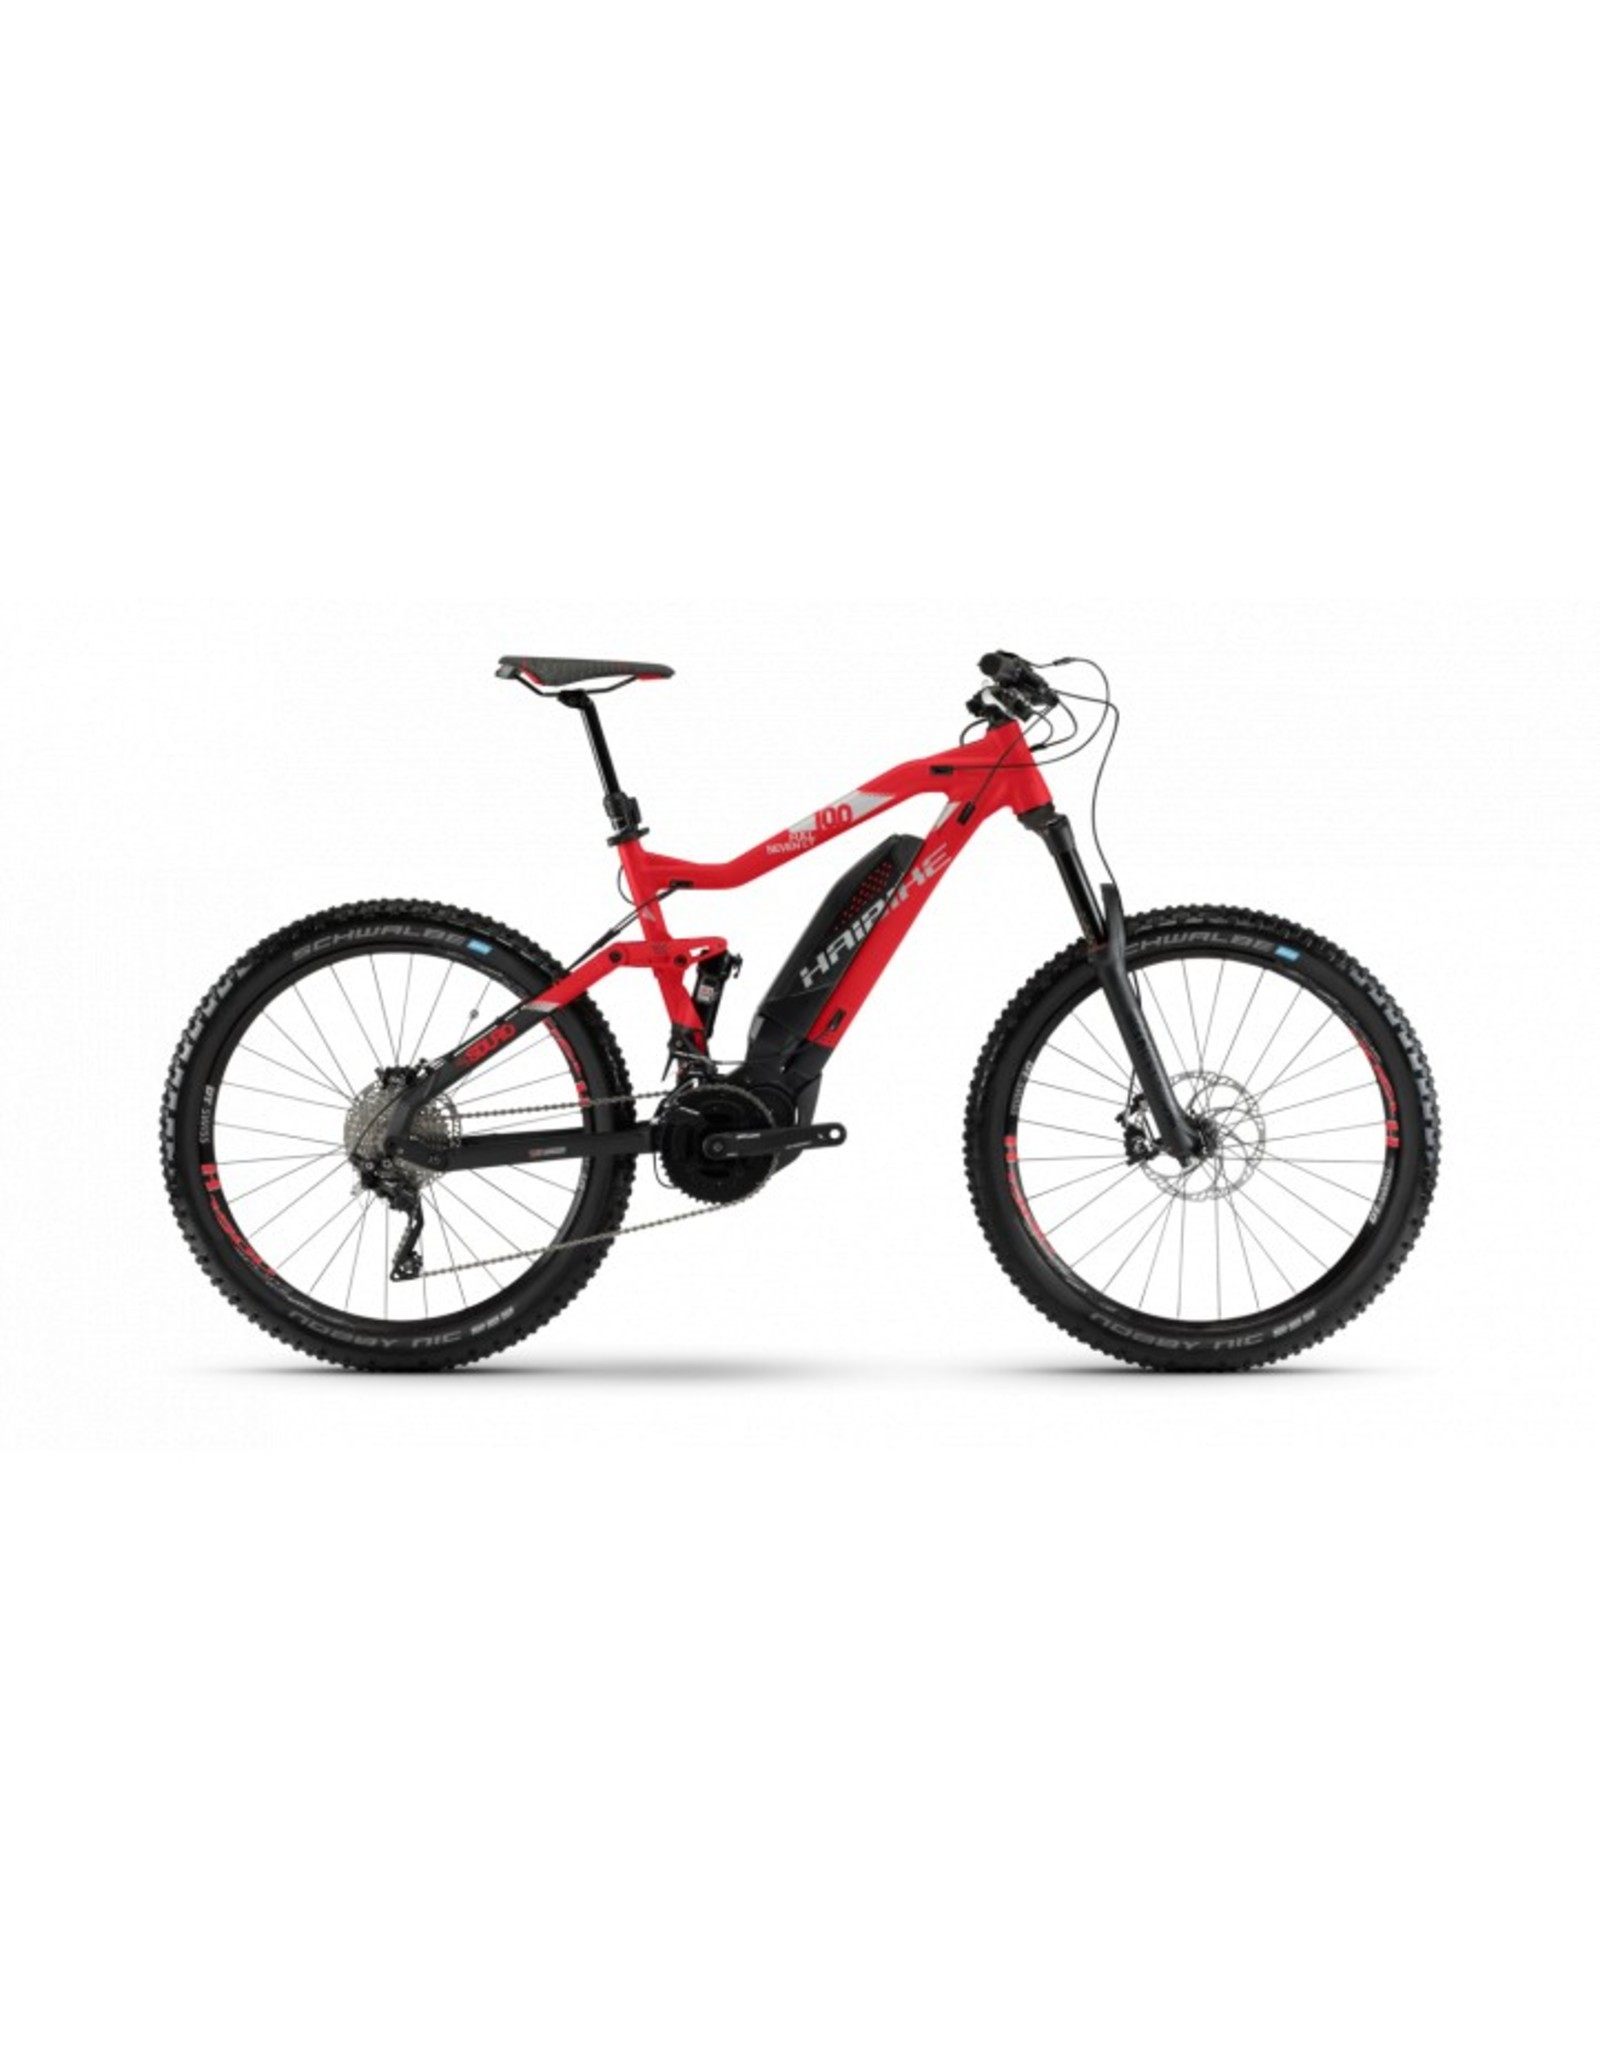 Haibike SD FULLSEVEN LT 10 48 RED